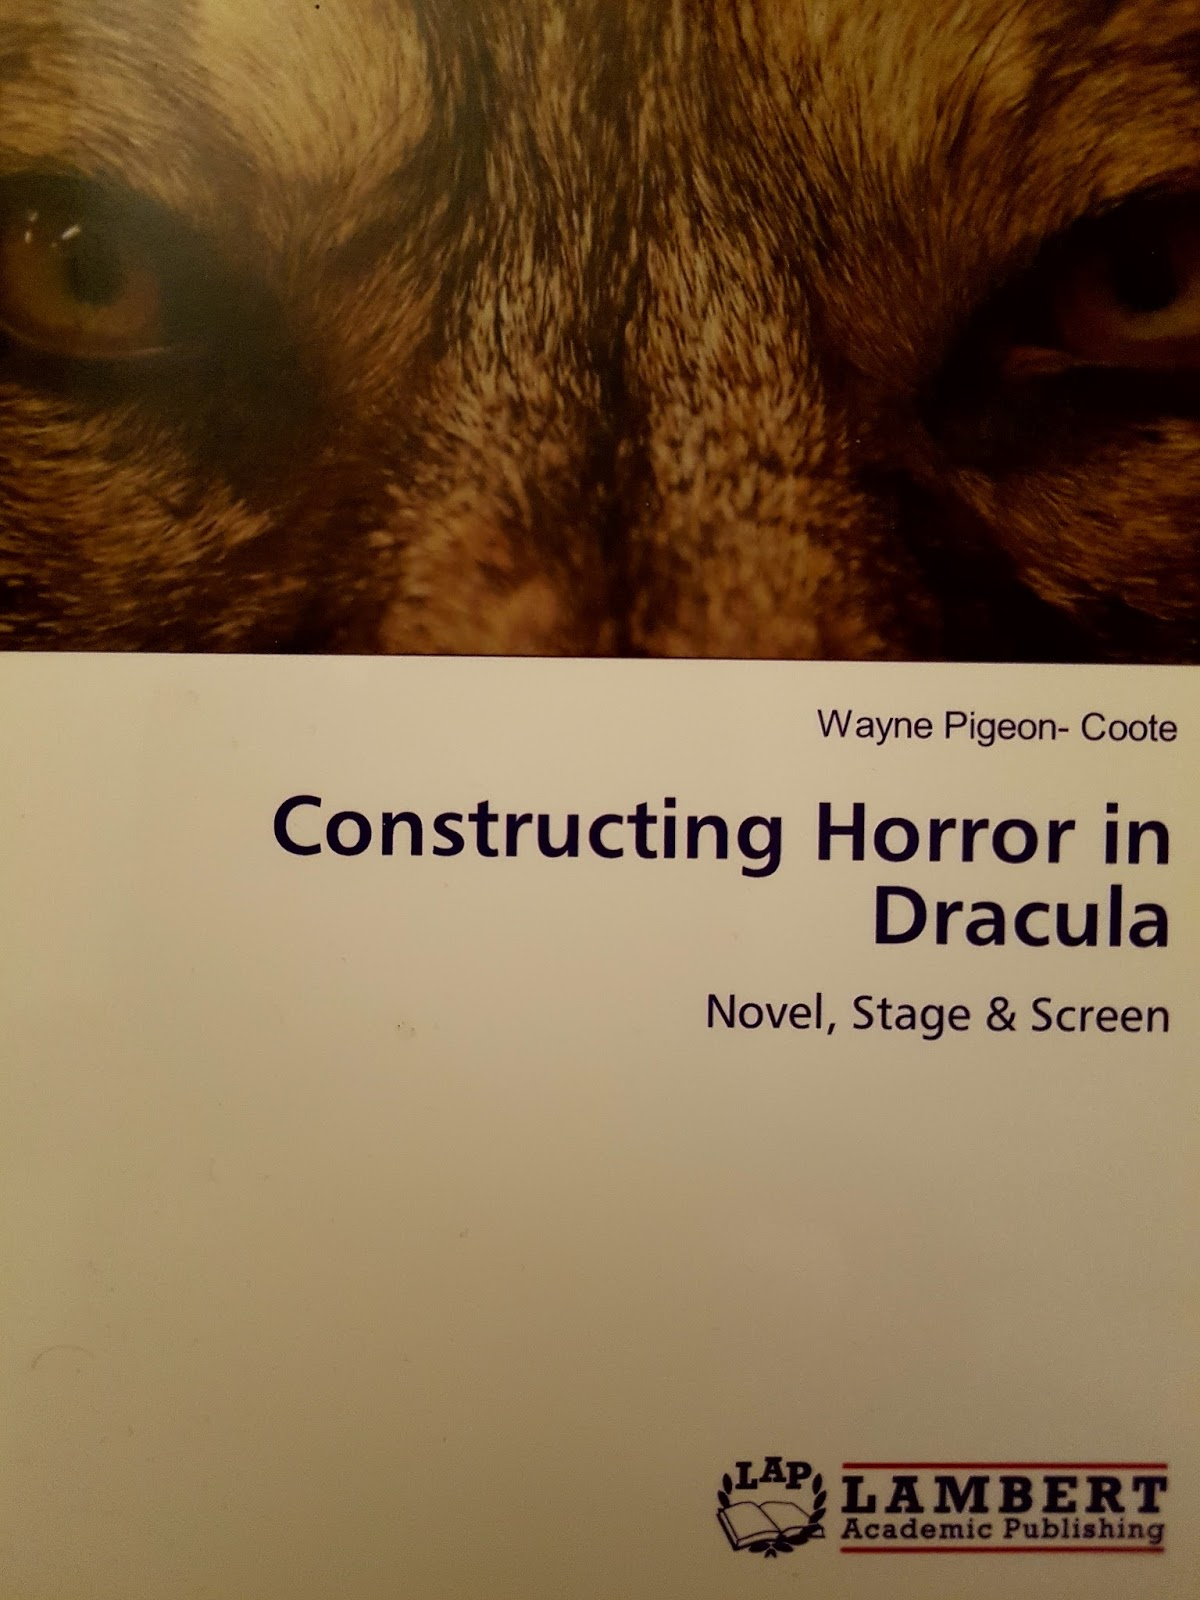 vampirism and sexuality story dracula bram stoker Most critics who discuss vampirism in bram stoker's dracula is 'really' pointing to a repressed sexuality at every tell merely a part of the story.